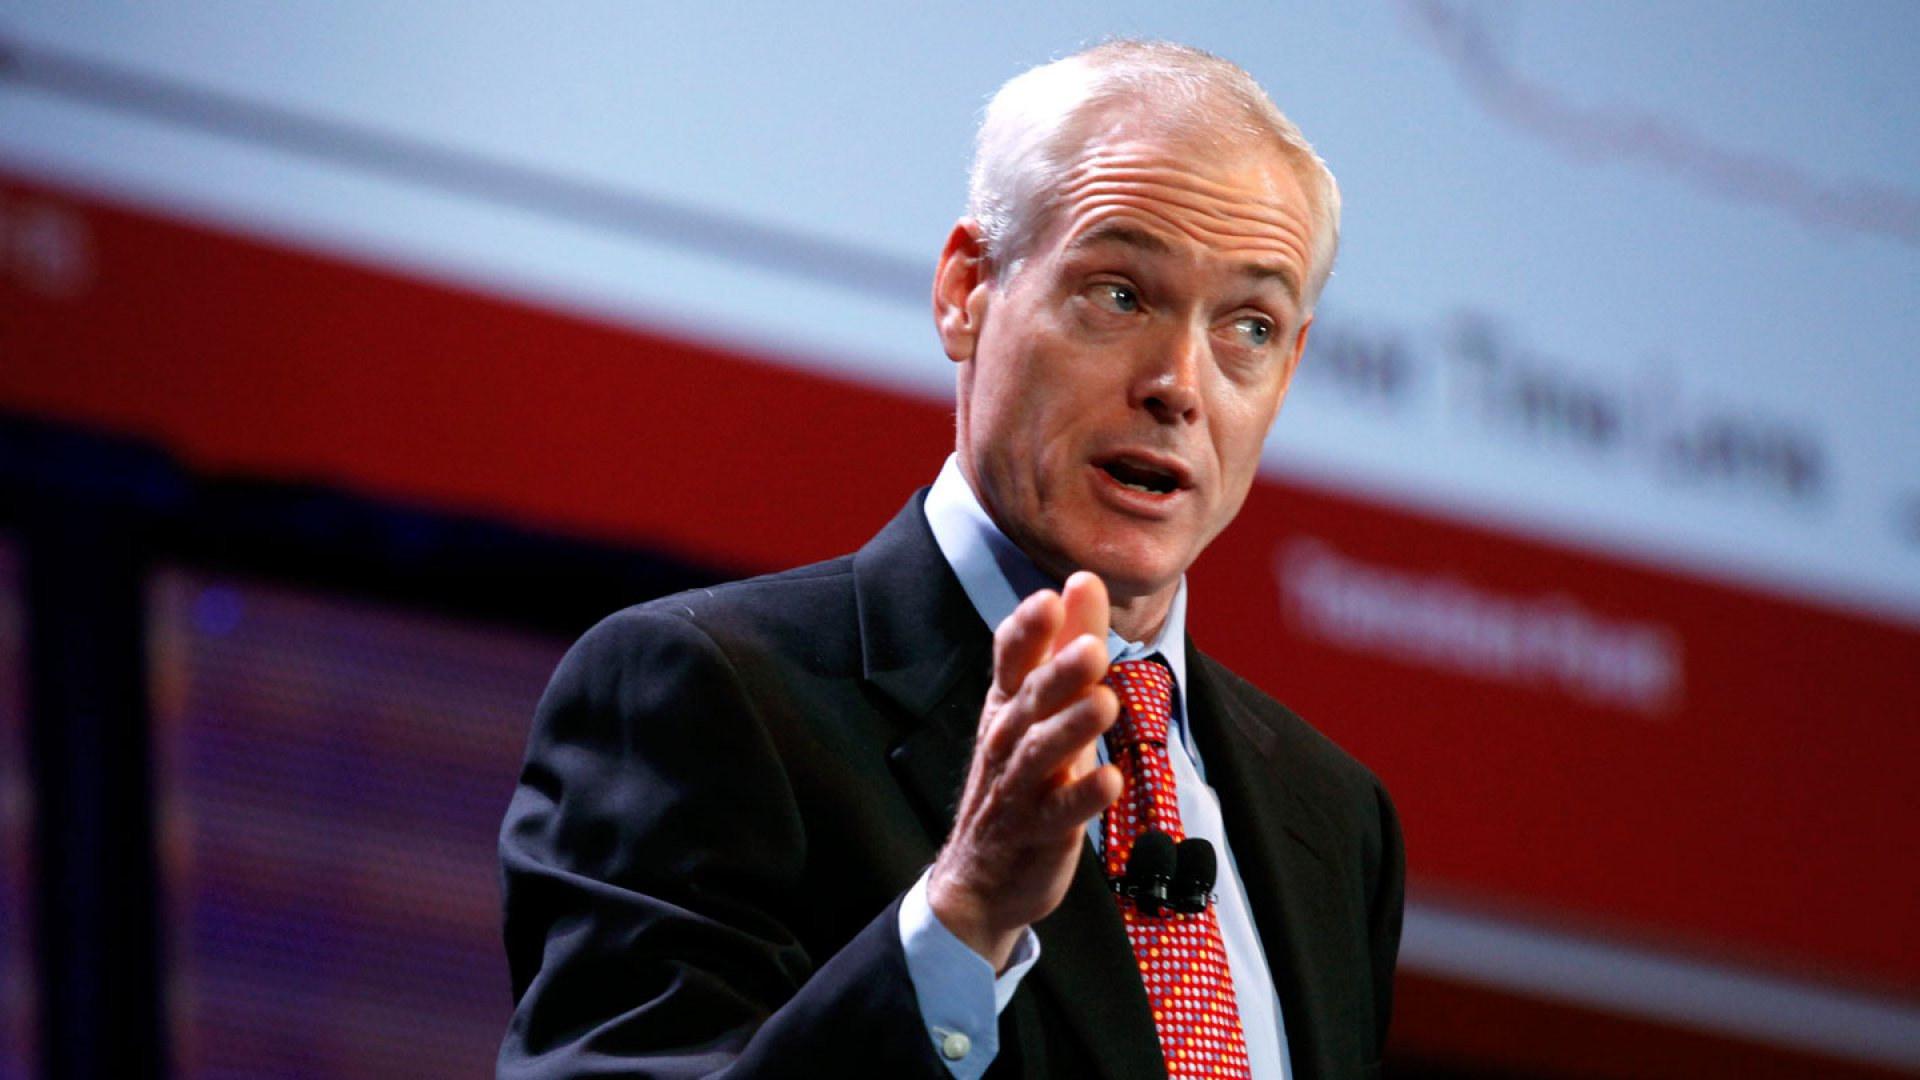 Author Jim Collins speaks at the World Business Forum in New York, U.S., on Tuesday, Oct. 5, 2010.